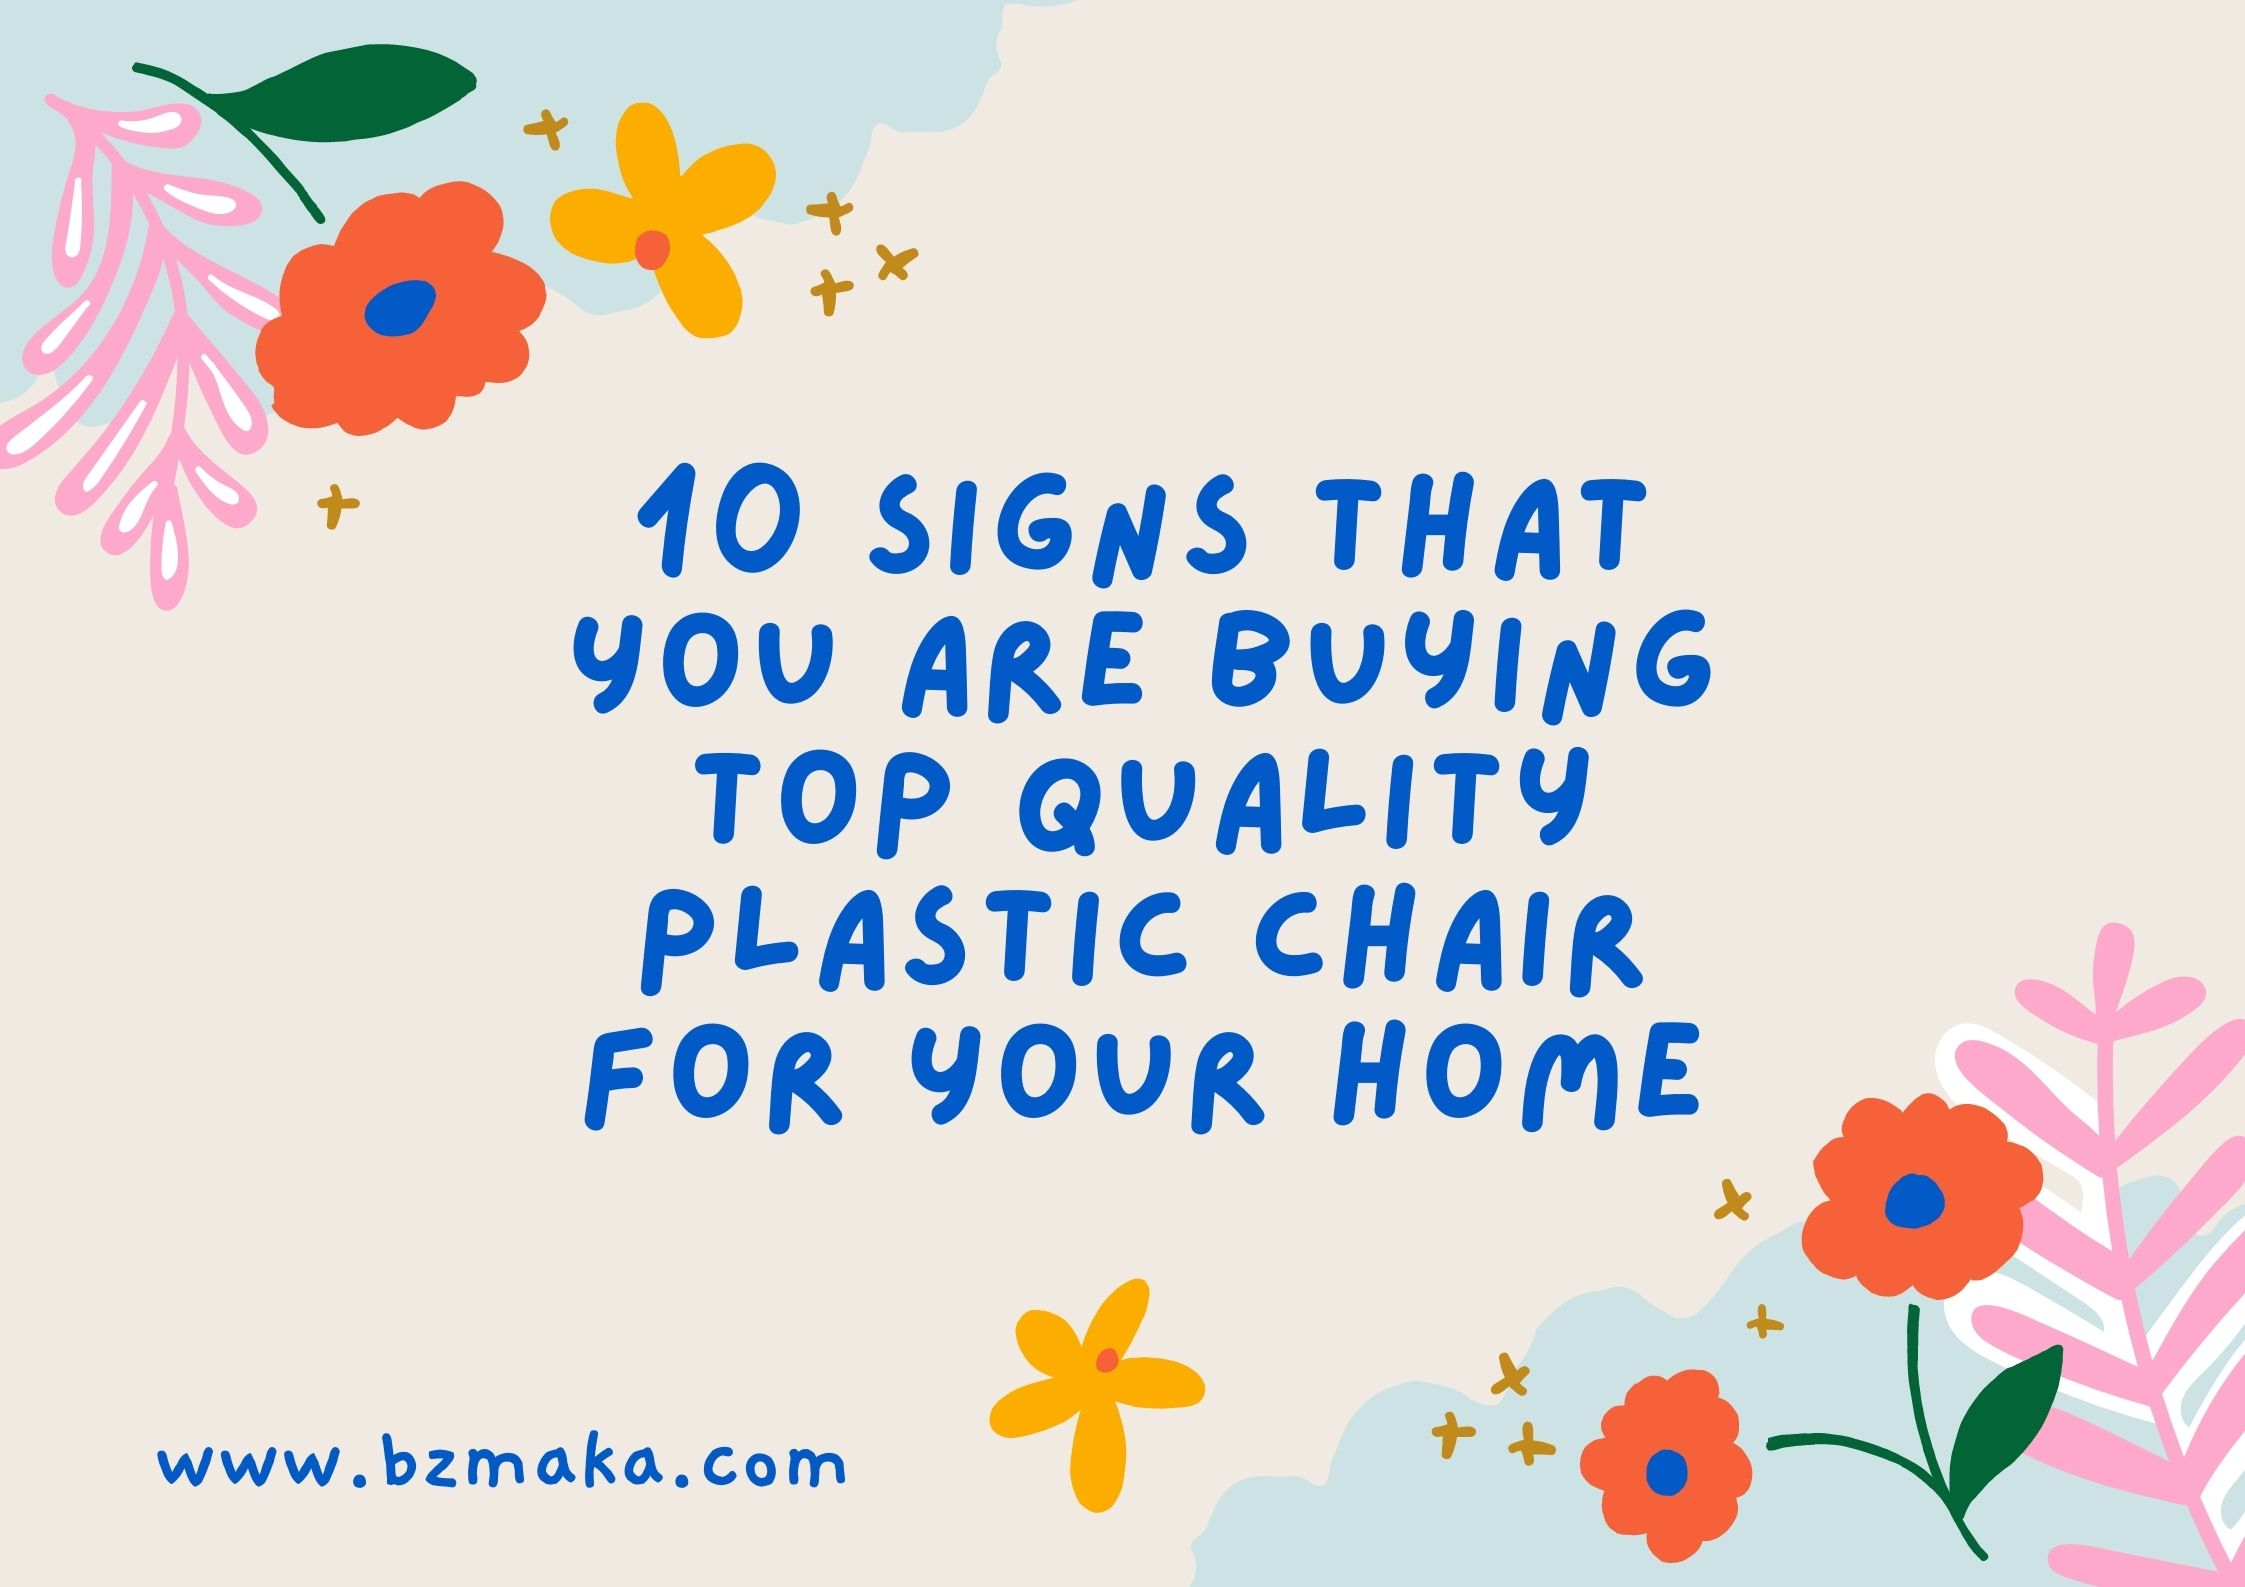 10 Signs that You are Buying Top Quality Plastic Chair for Your Home